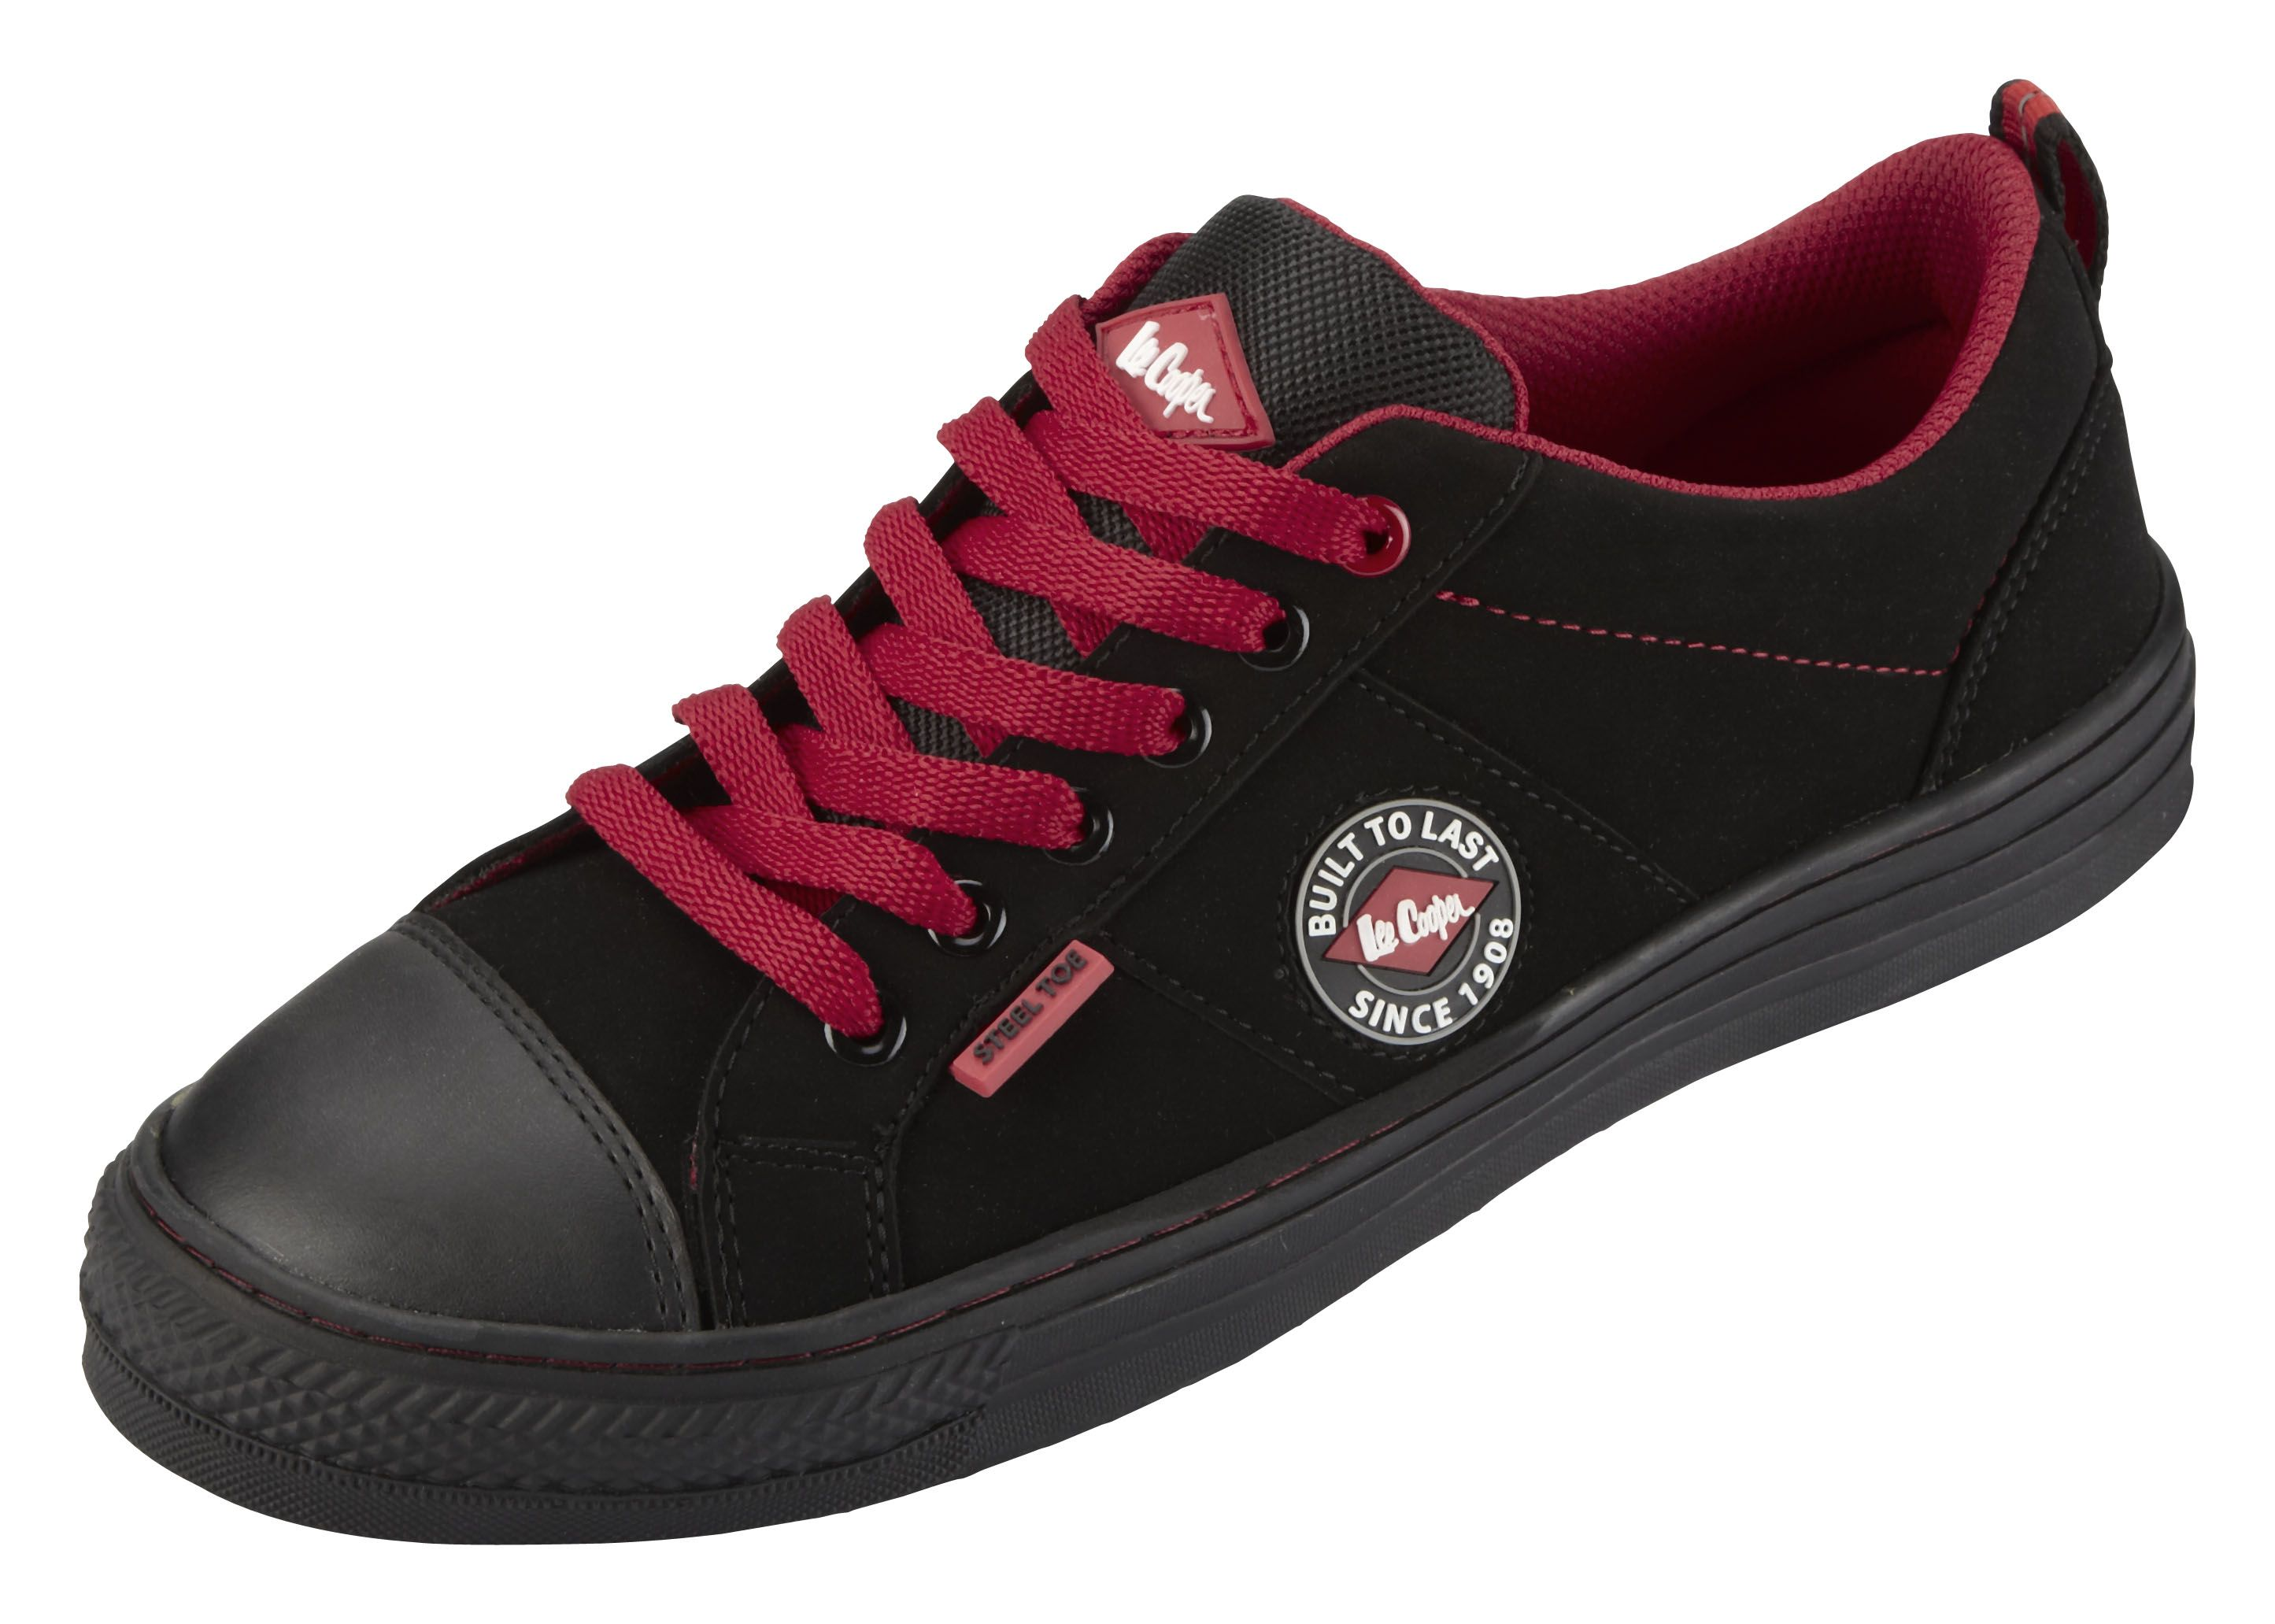 Lee Cooper Safety Shoes With Steel Toe